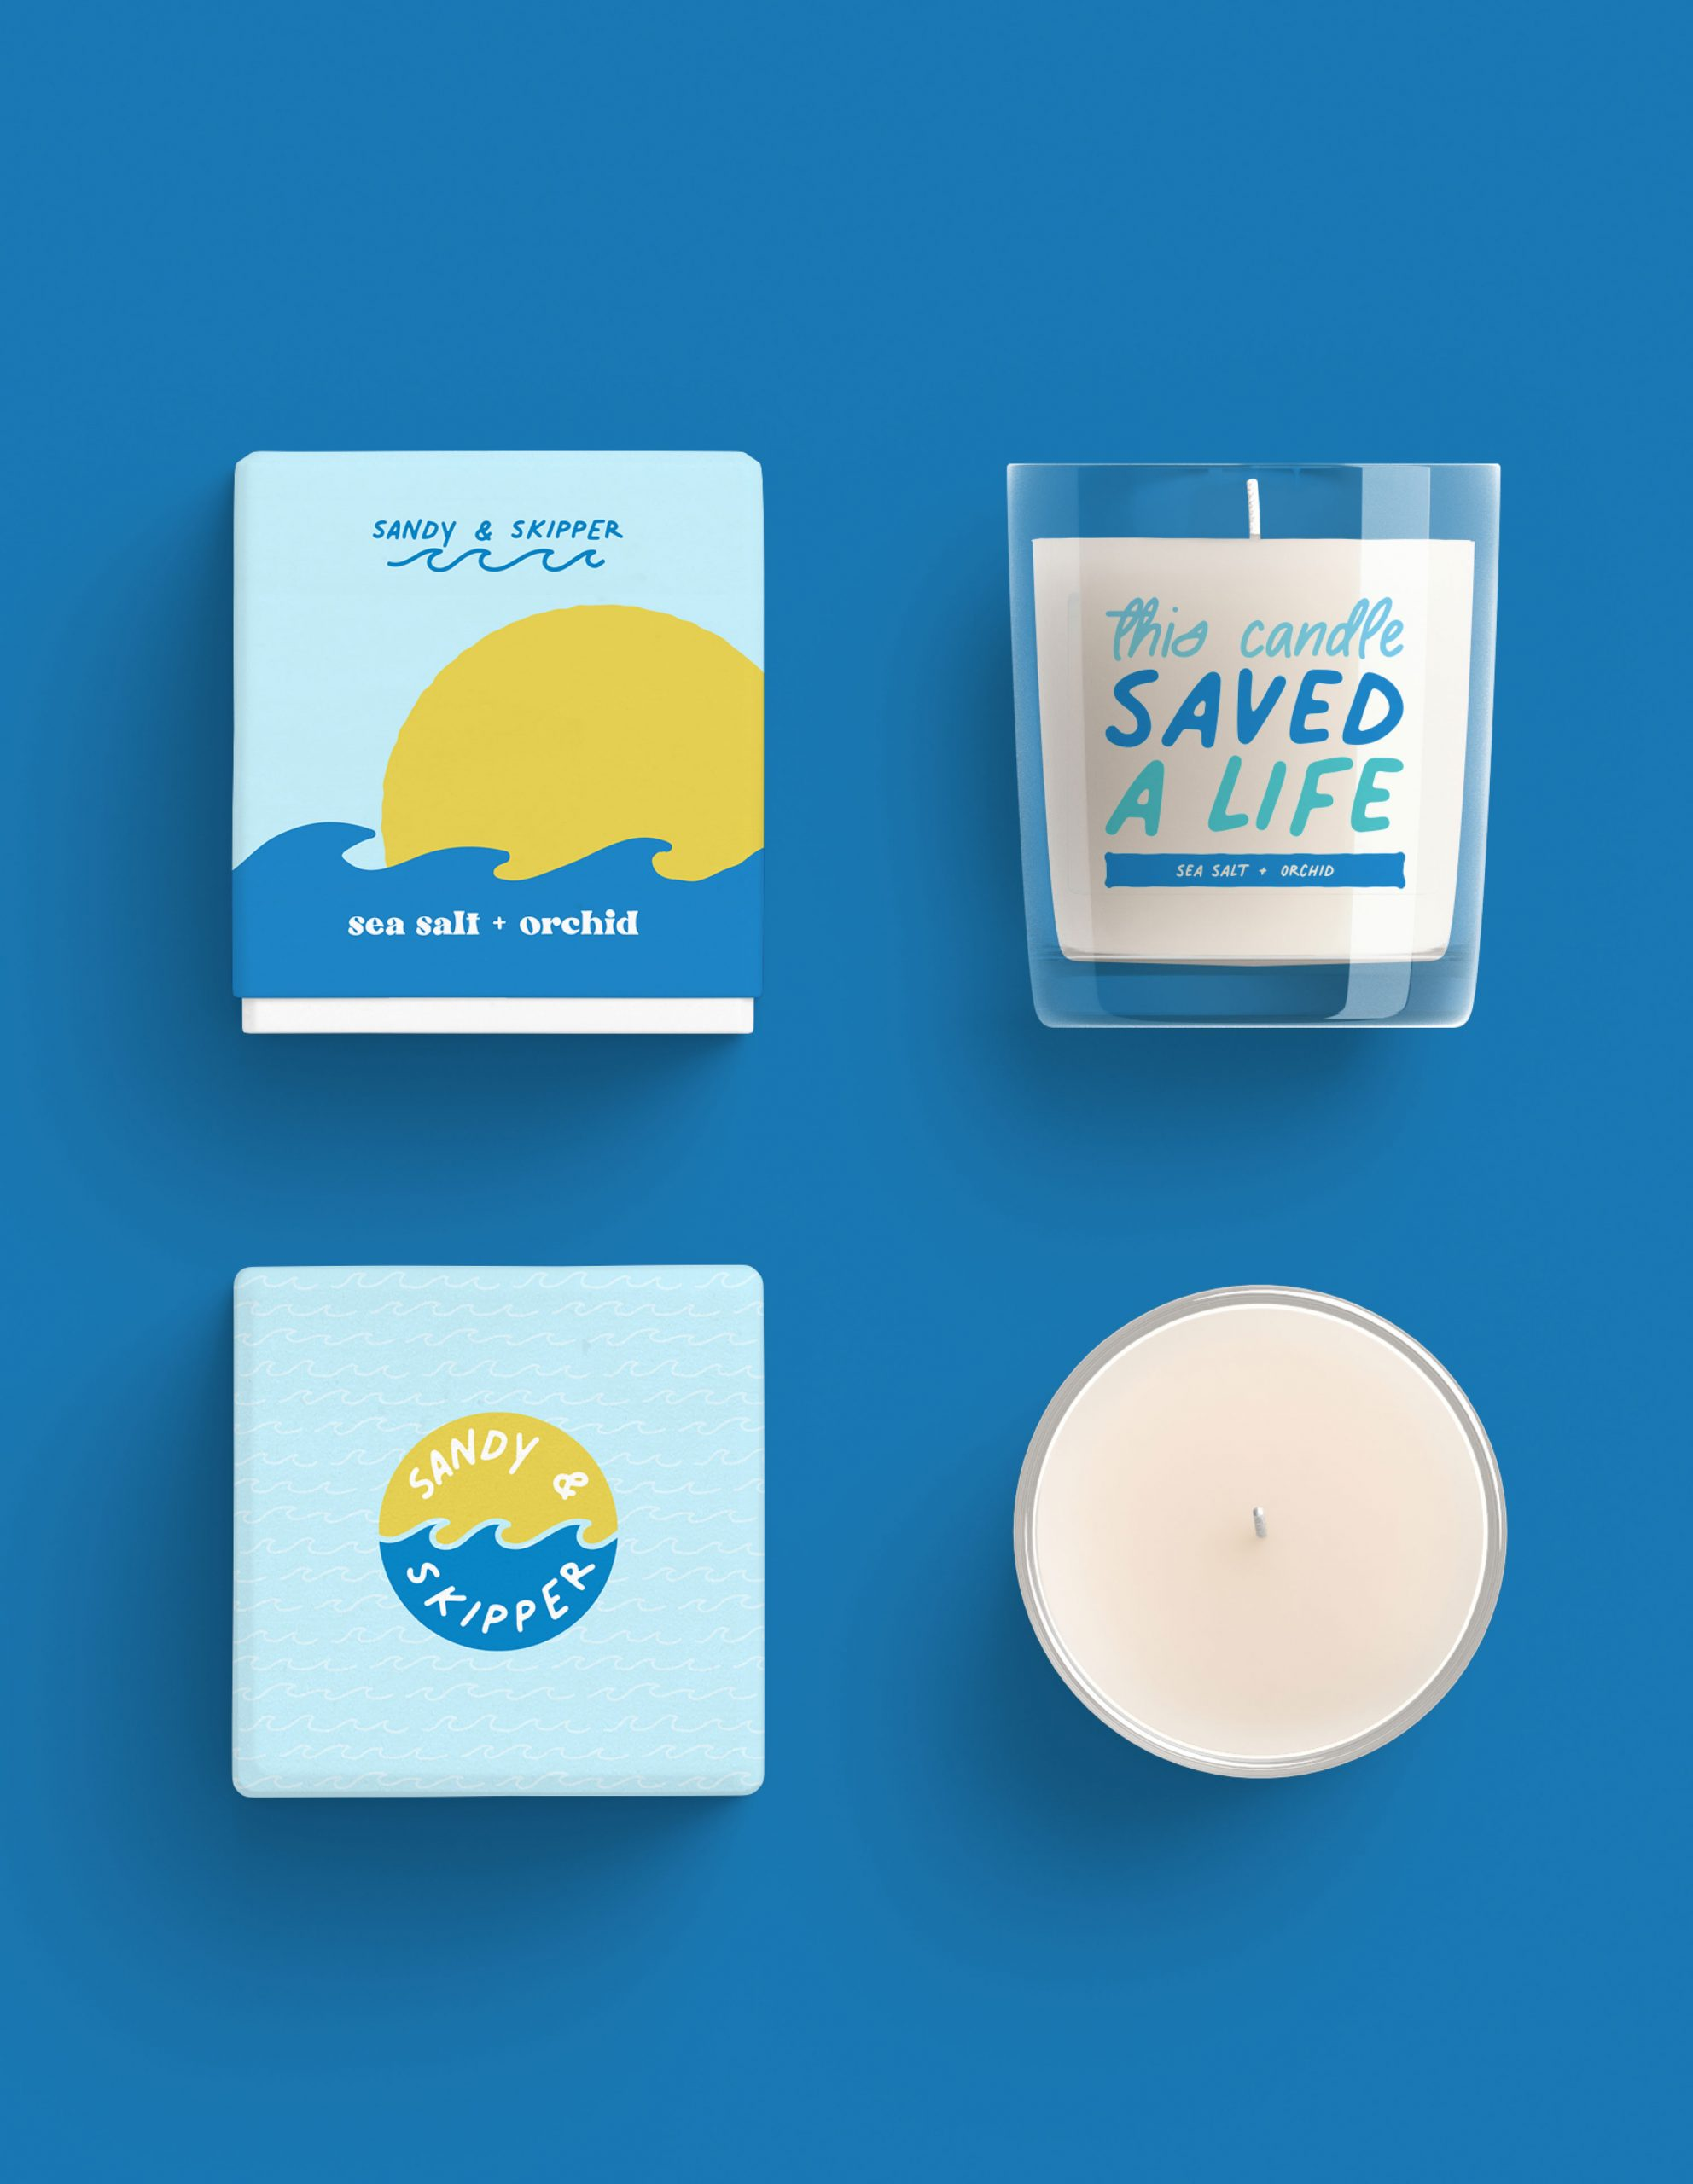 Sandy and Skipper sun and waves product packaging